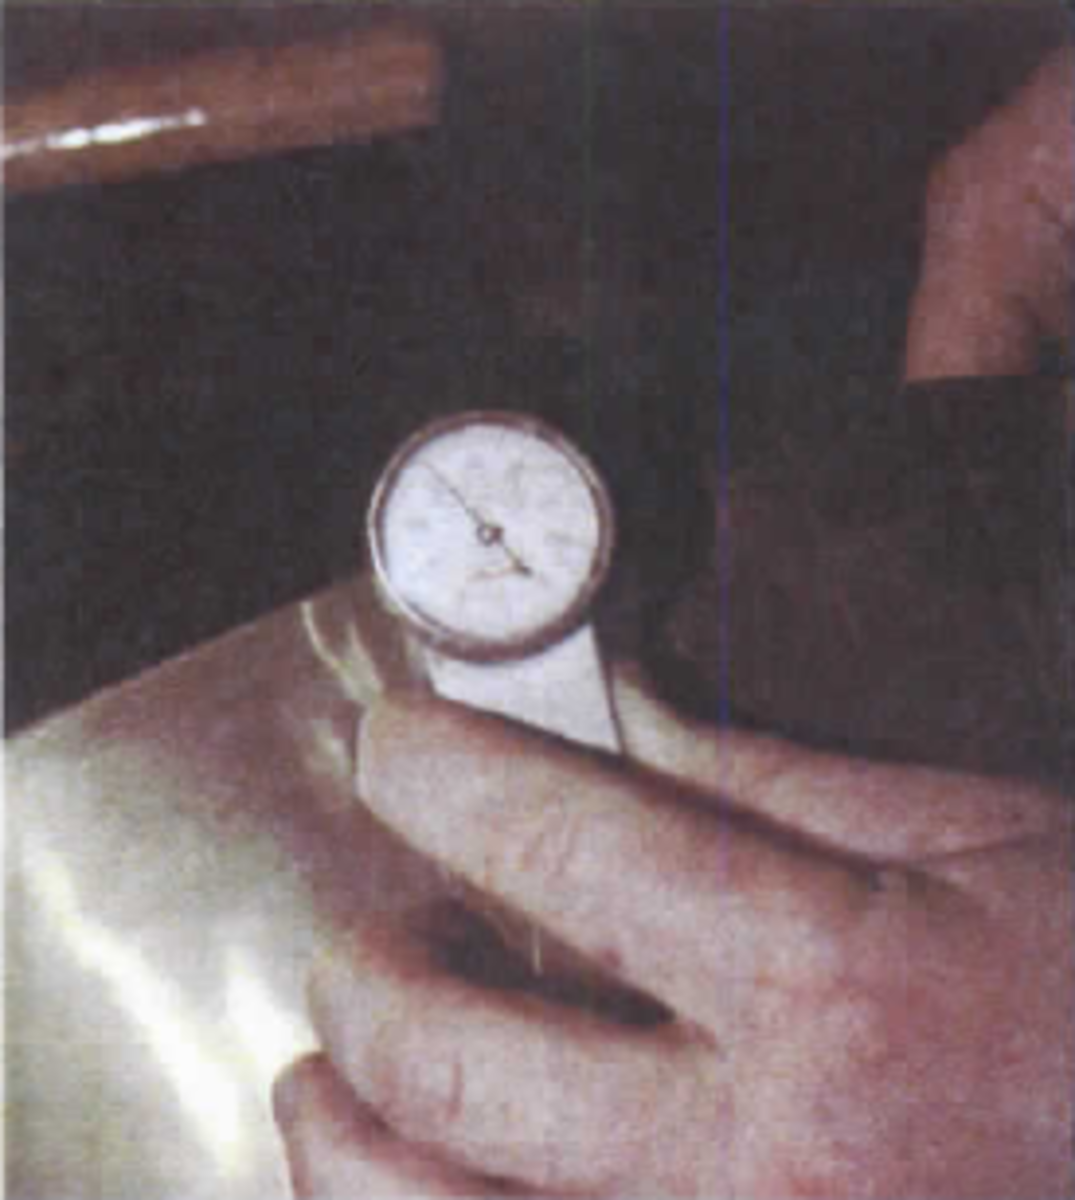 Cup is hand measured using a dial indicator.